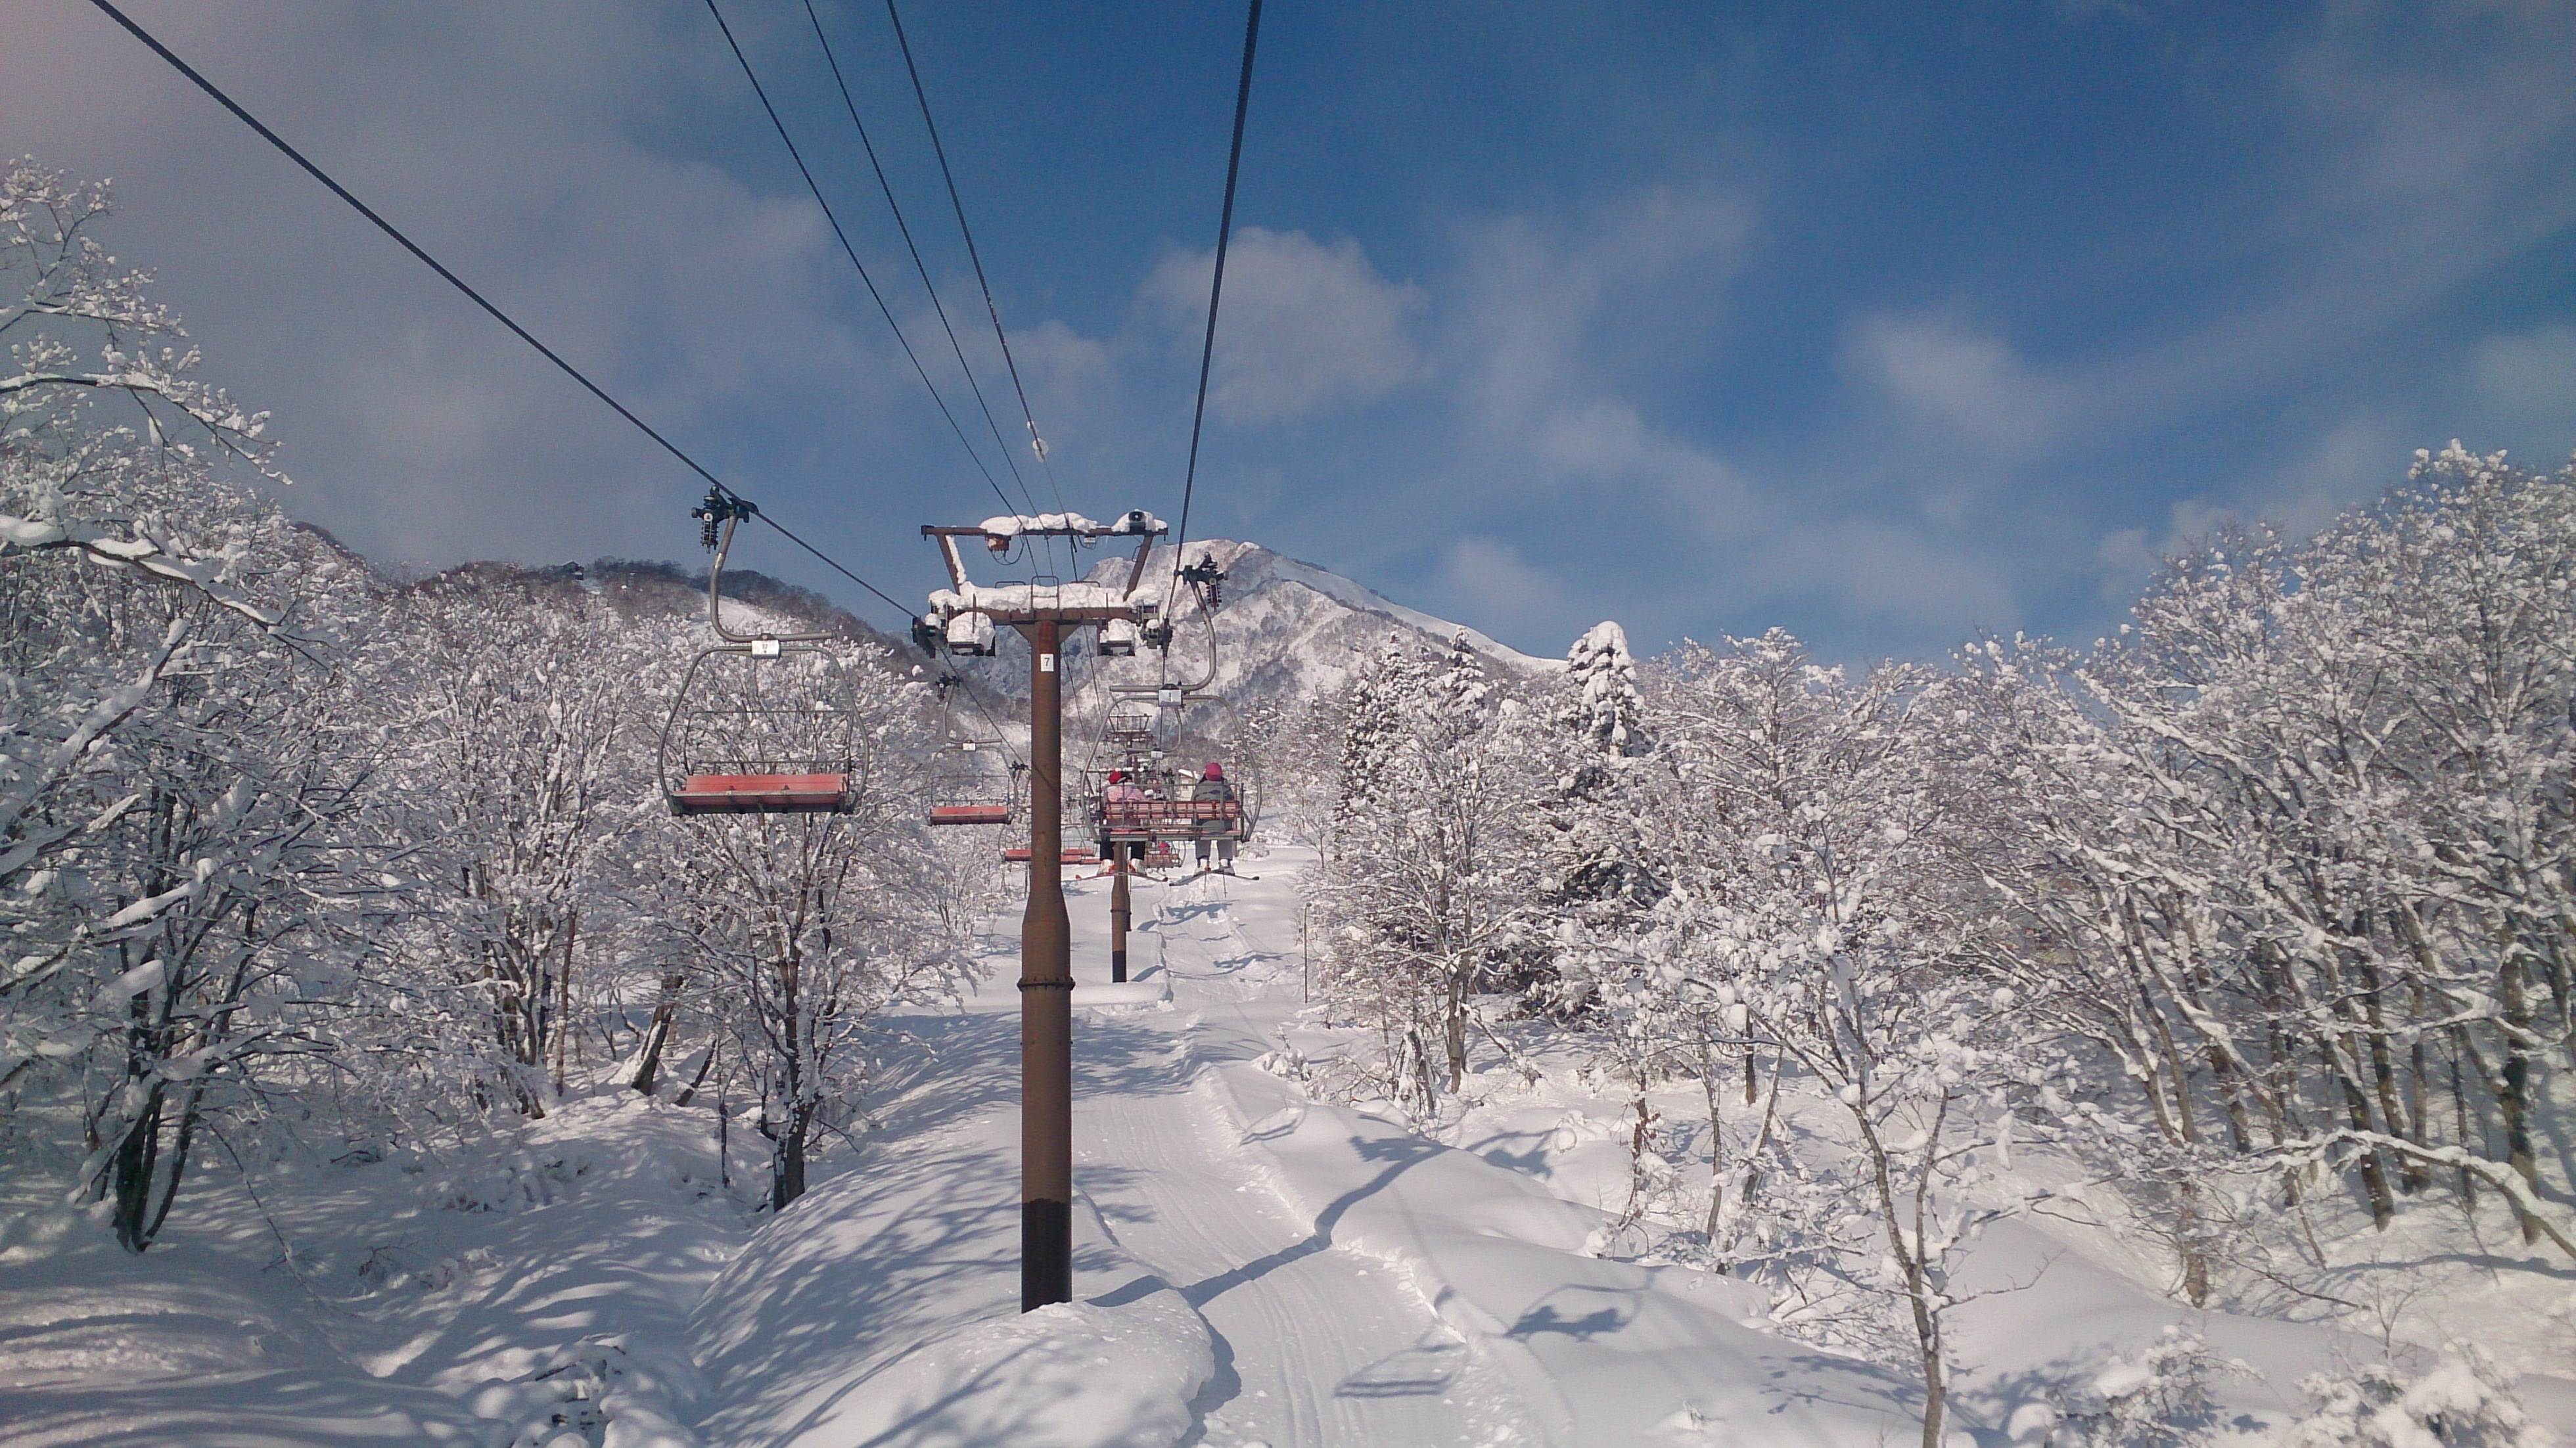 Myoko Kogen Ski Resort, Japan